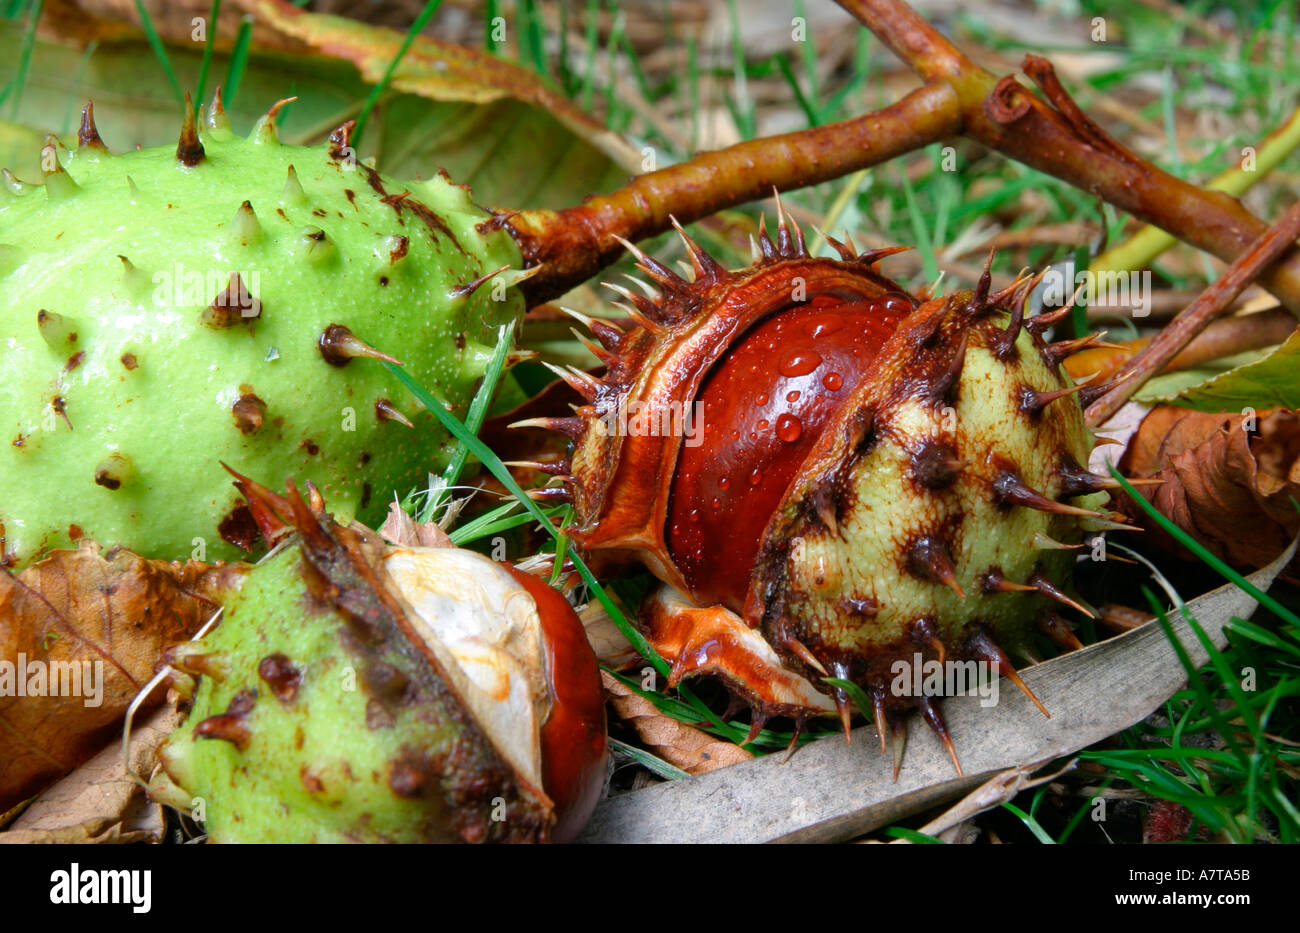 Horse Chestnut conker still within its shell attached to a small branch  - Stock Image